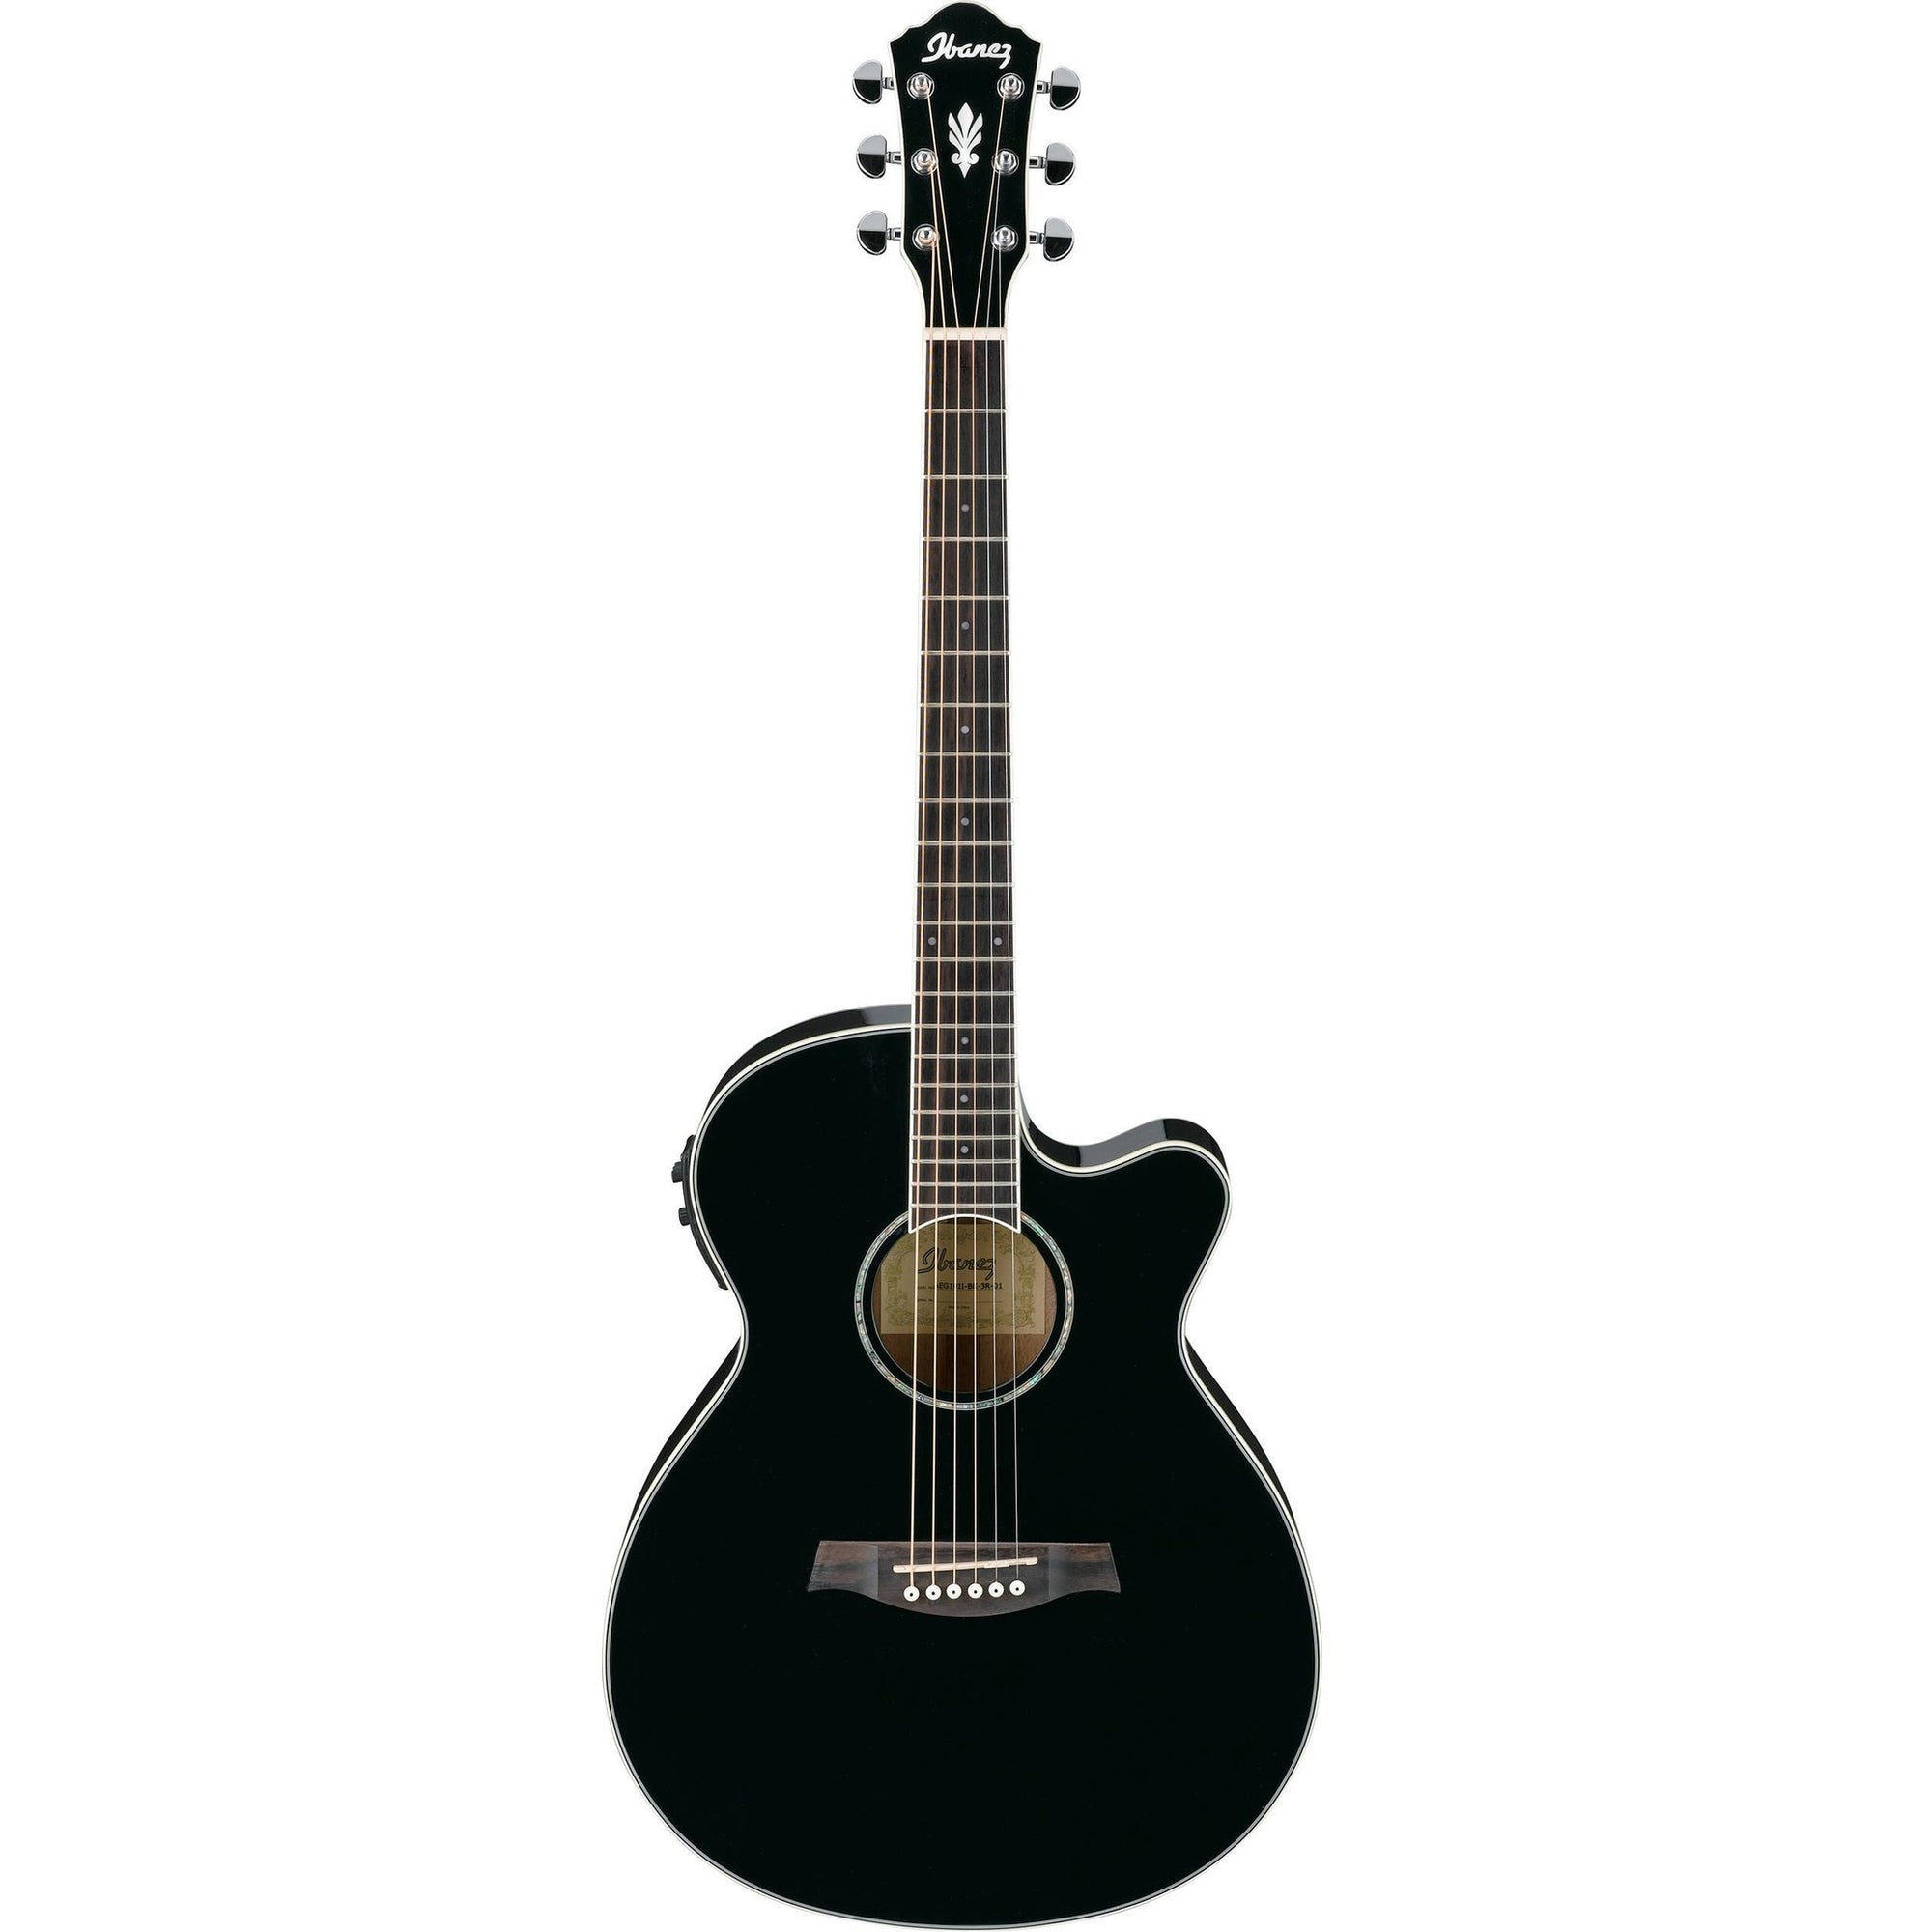 Ibanez AEG10II Acoustic-Electric Guitar